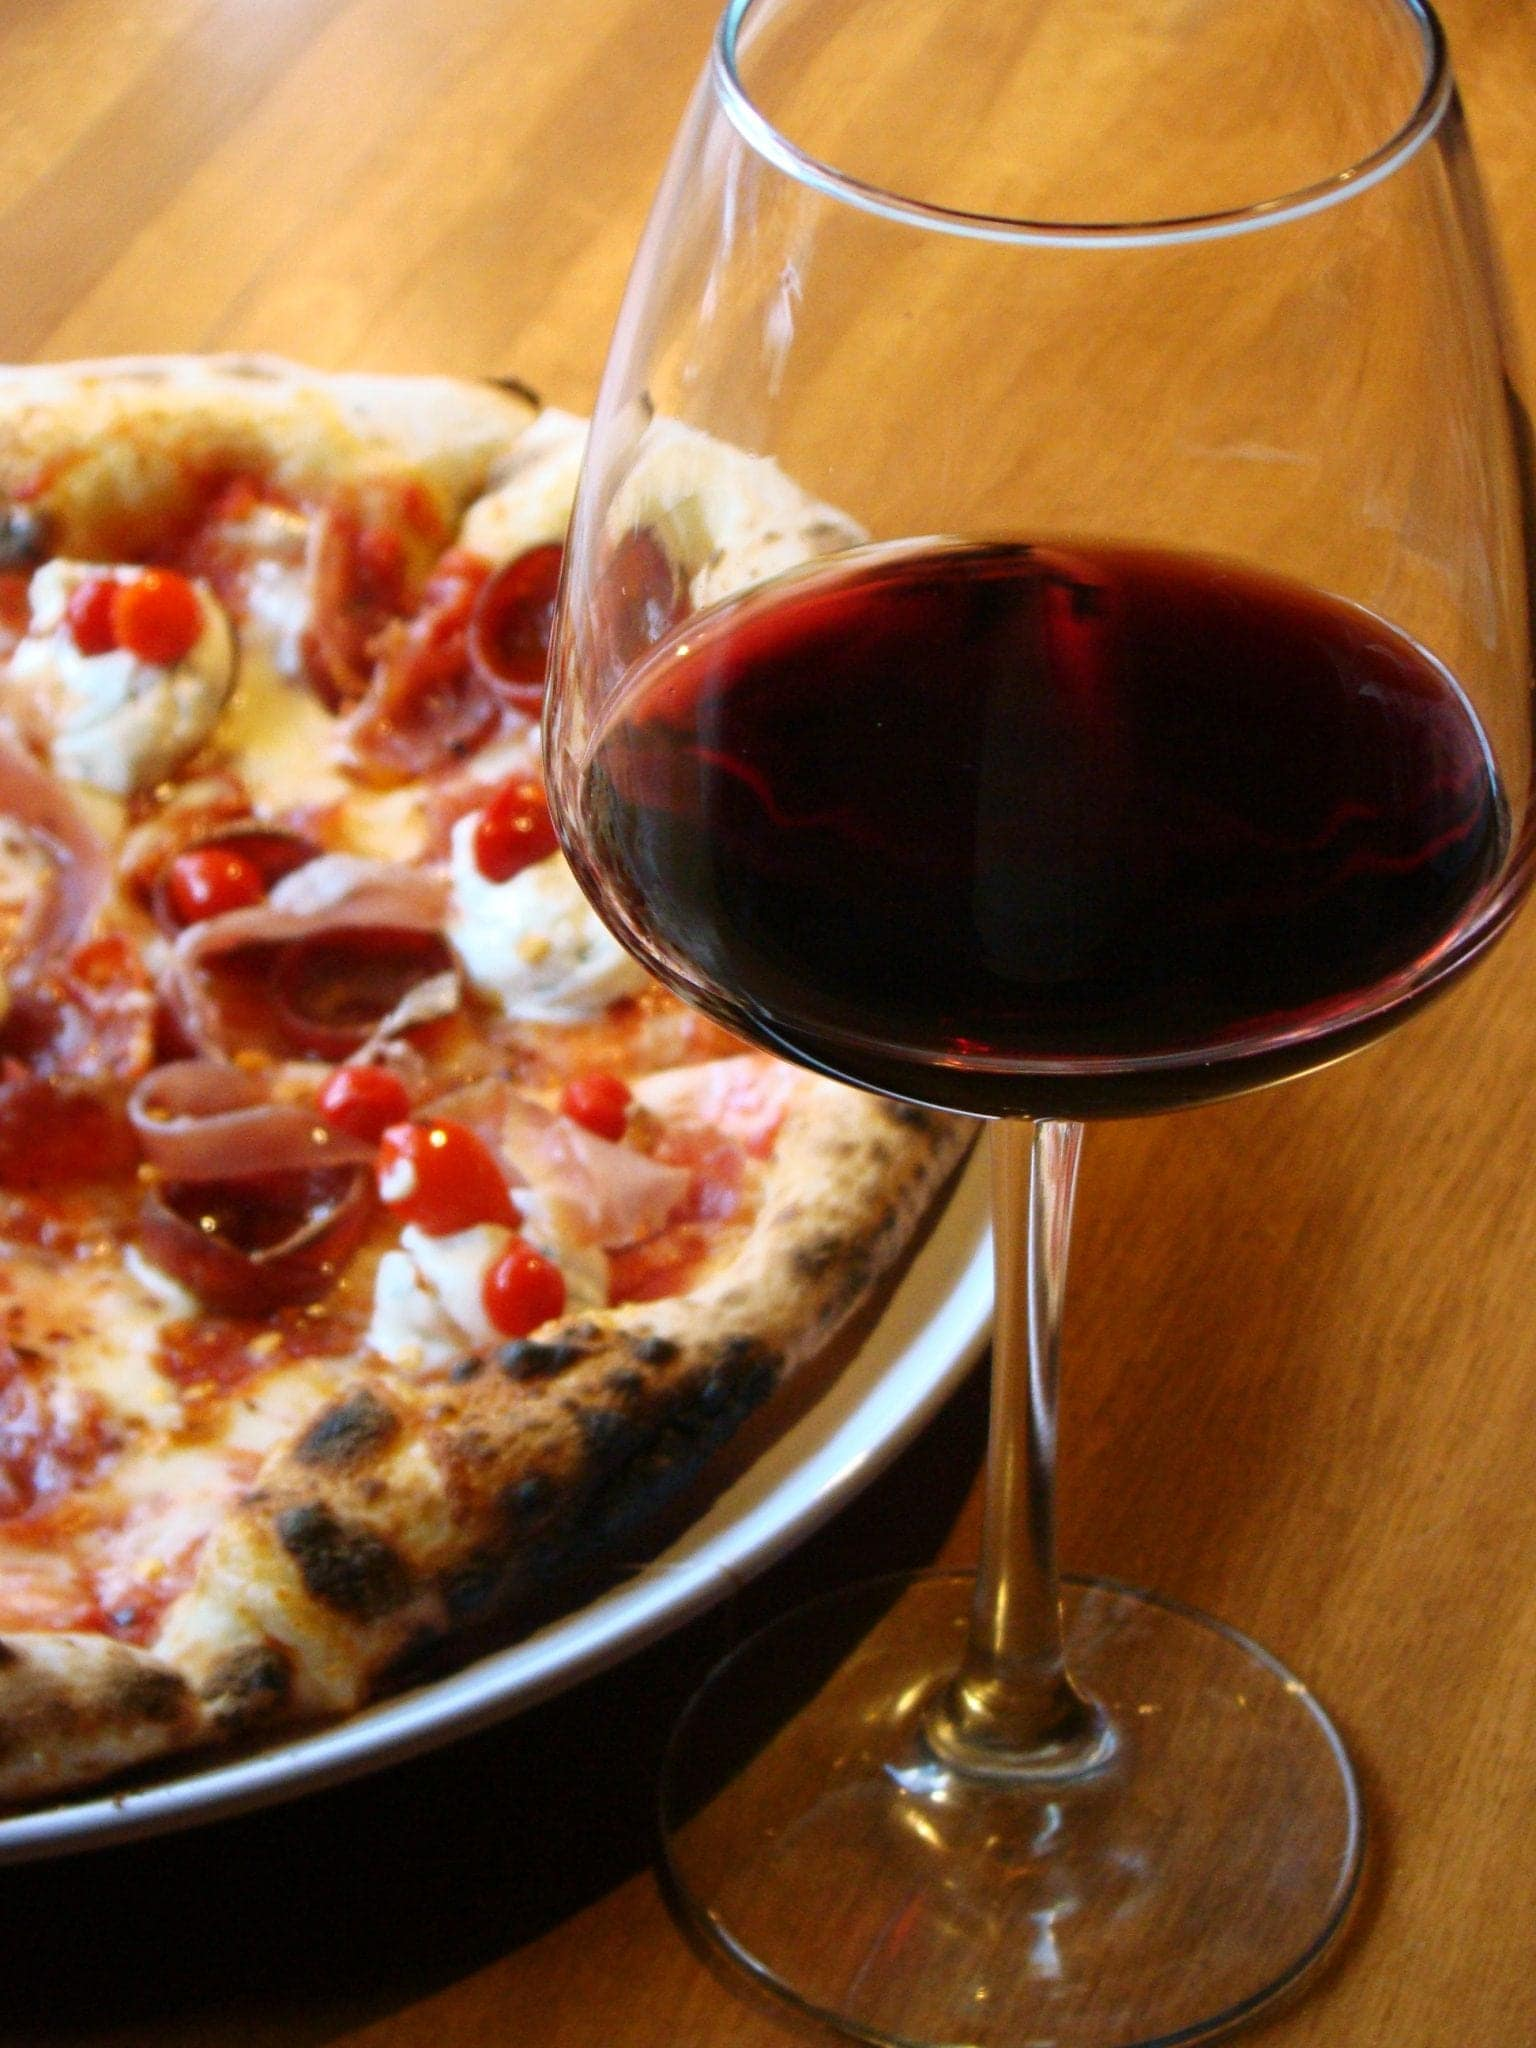 Pizza and a glass of red wine at Peppino's, soon to be Pomodoro